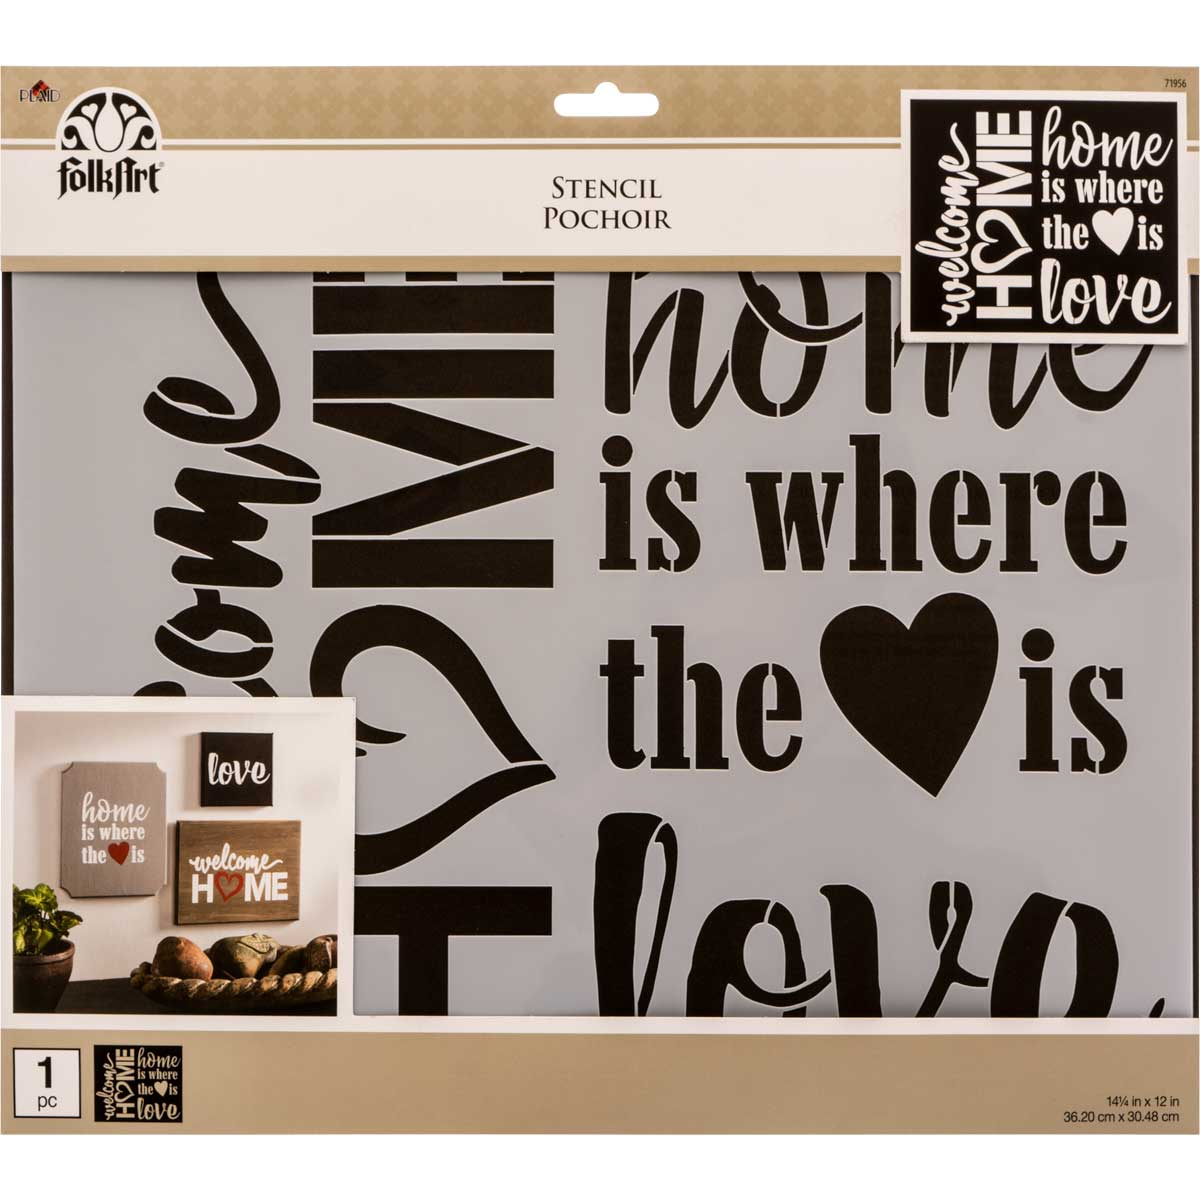 FolkArt ® Painting Stencils - Sign Making - Welcome Home